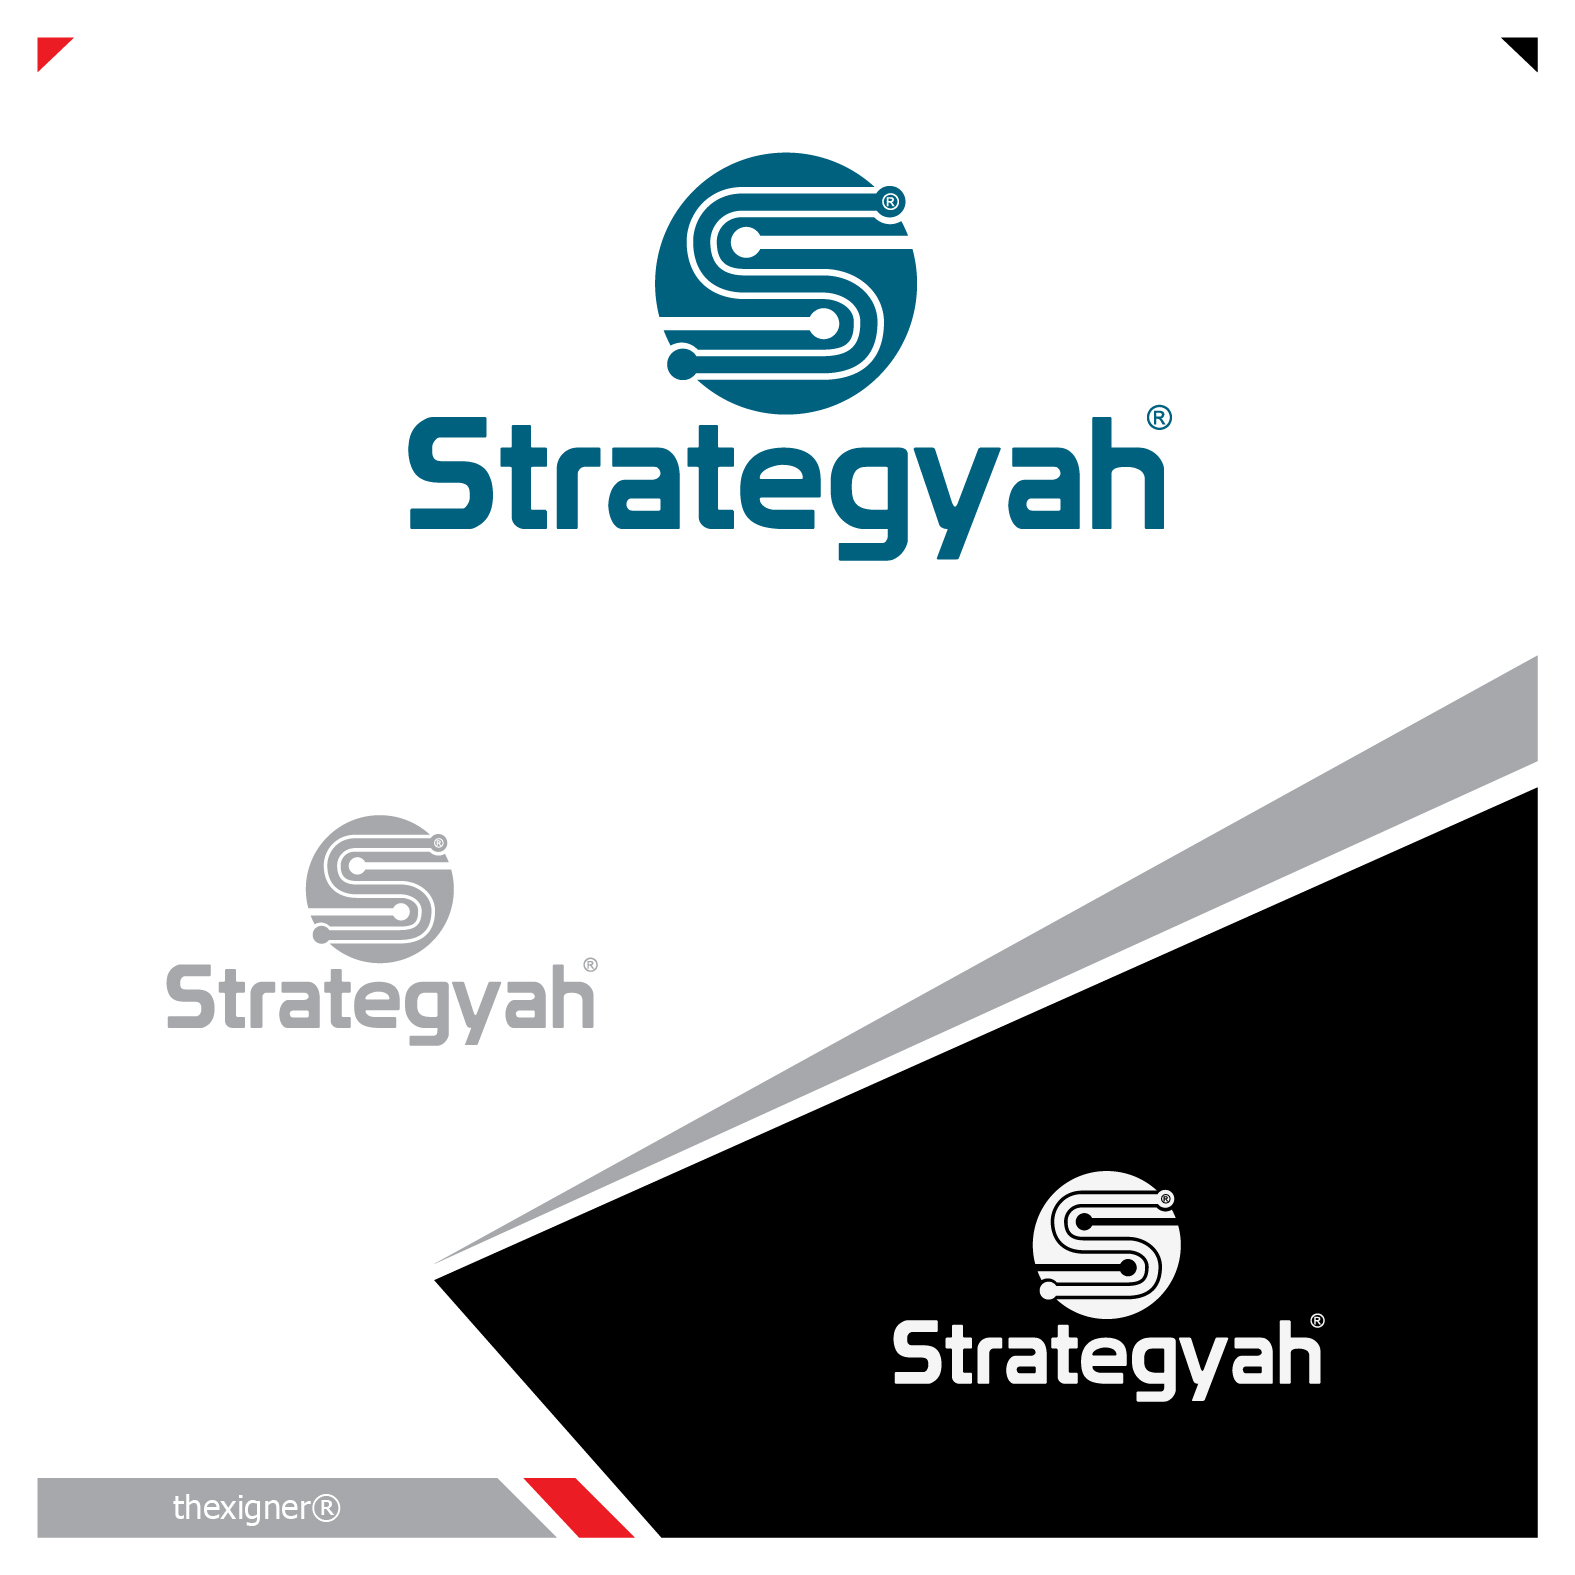 Logo Design by lagalag - Entry No. 225 in the Logo Design Contest Creative Logo Design for Strategyah.